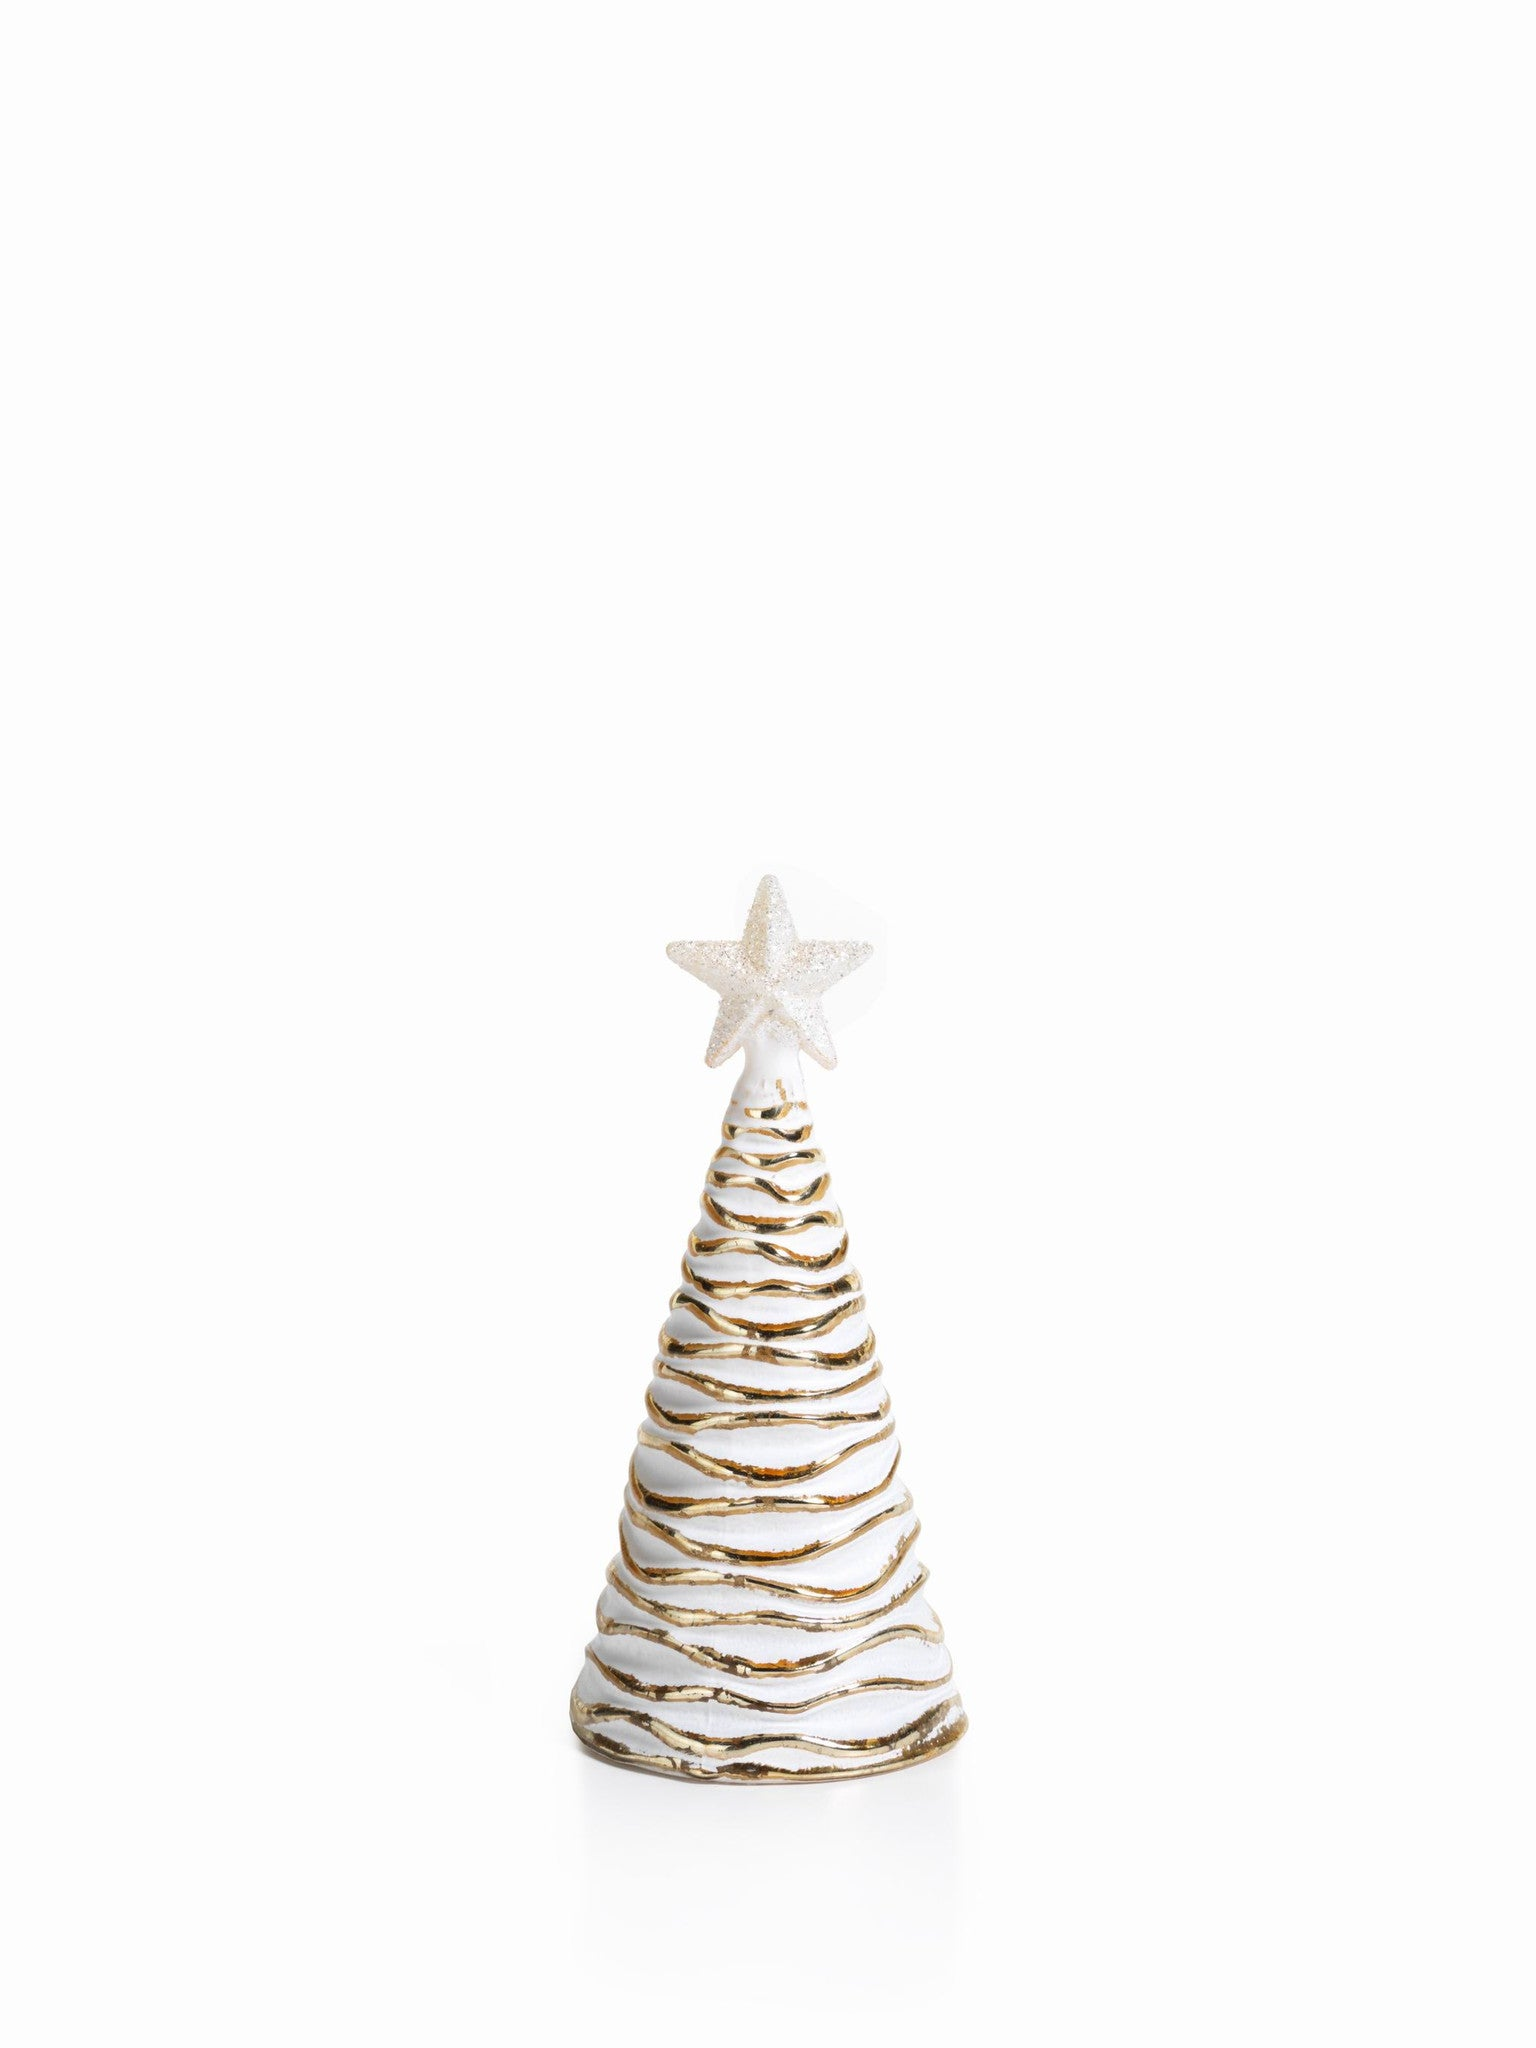 LED Glass Decorative Tree - Gold - Set of 6 - Small / Wavy - CARLYLE AVENUE - 3